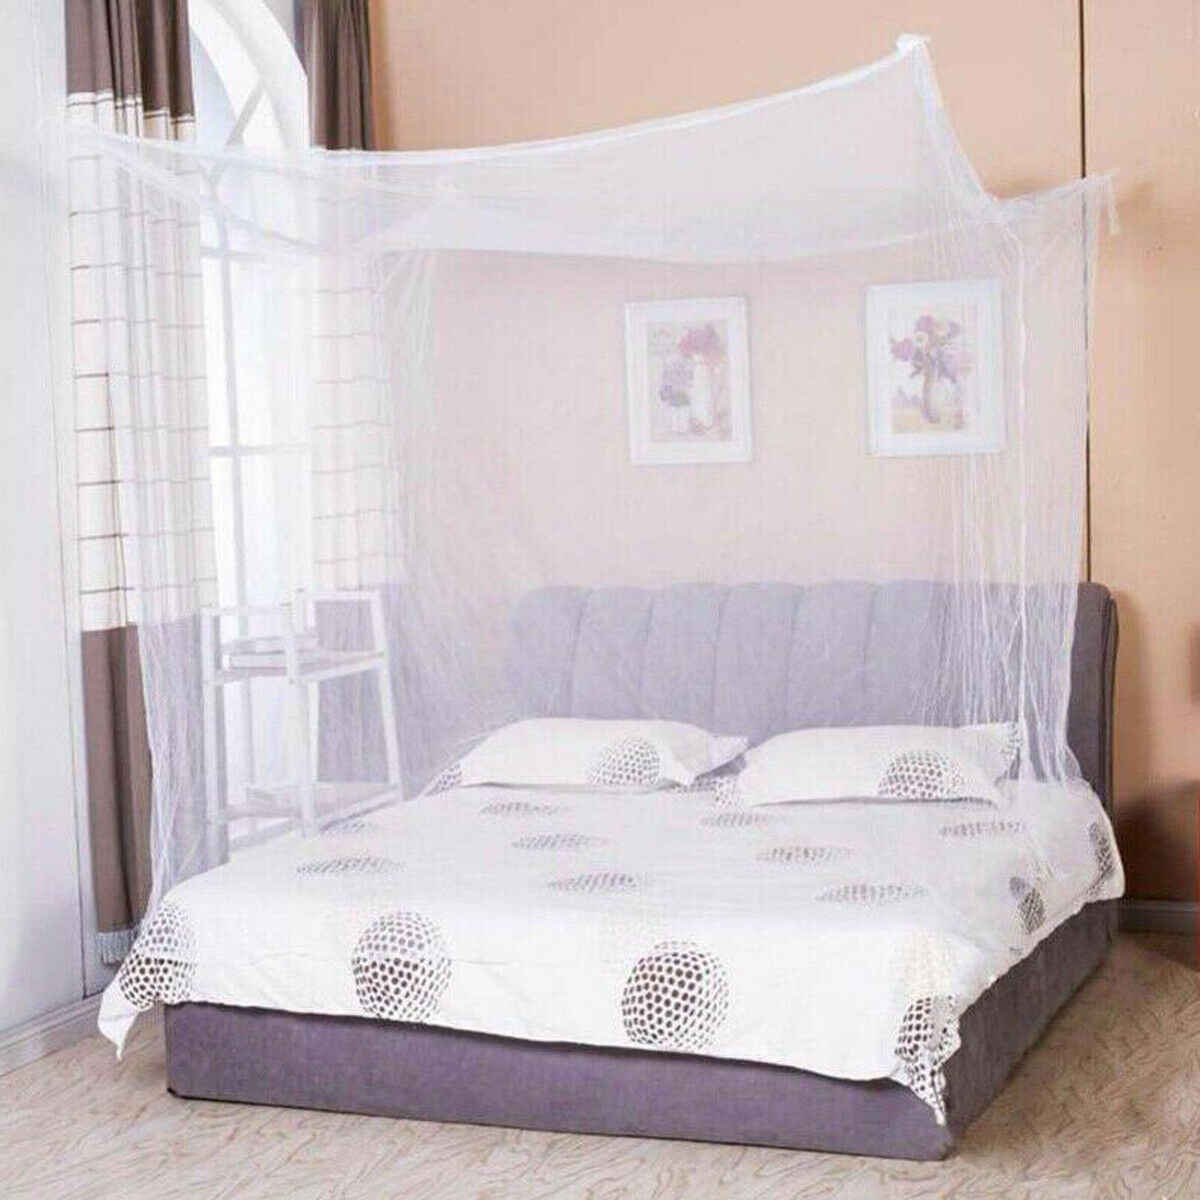 NEW Lace Bedding Insect Netting Bed Mosquito Net 4 Corner Post Bed Student Canopy Princess Twin Full Size